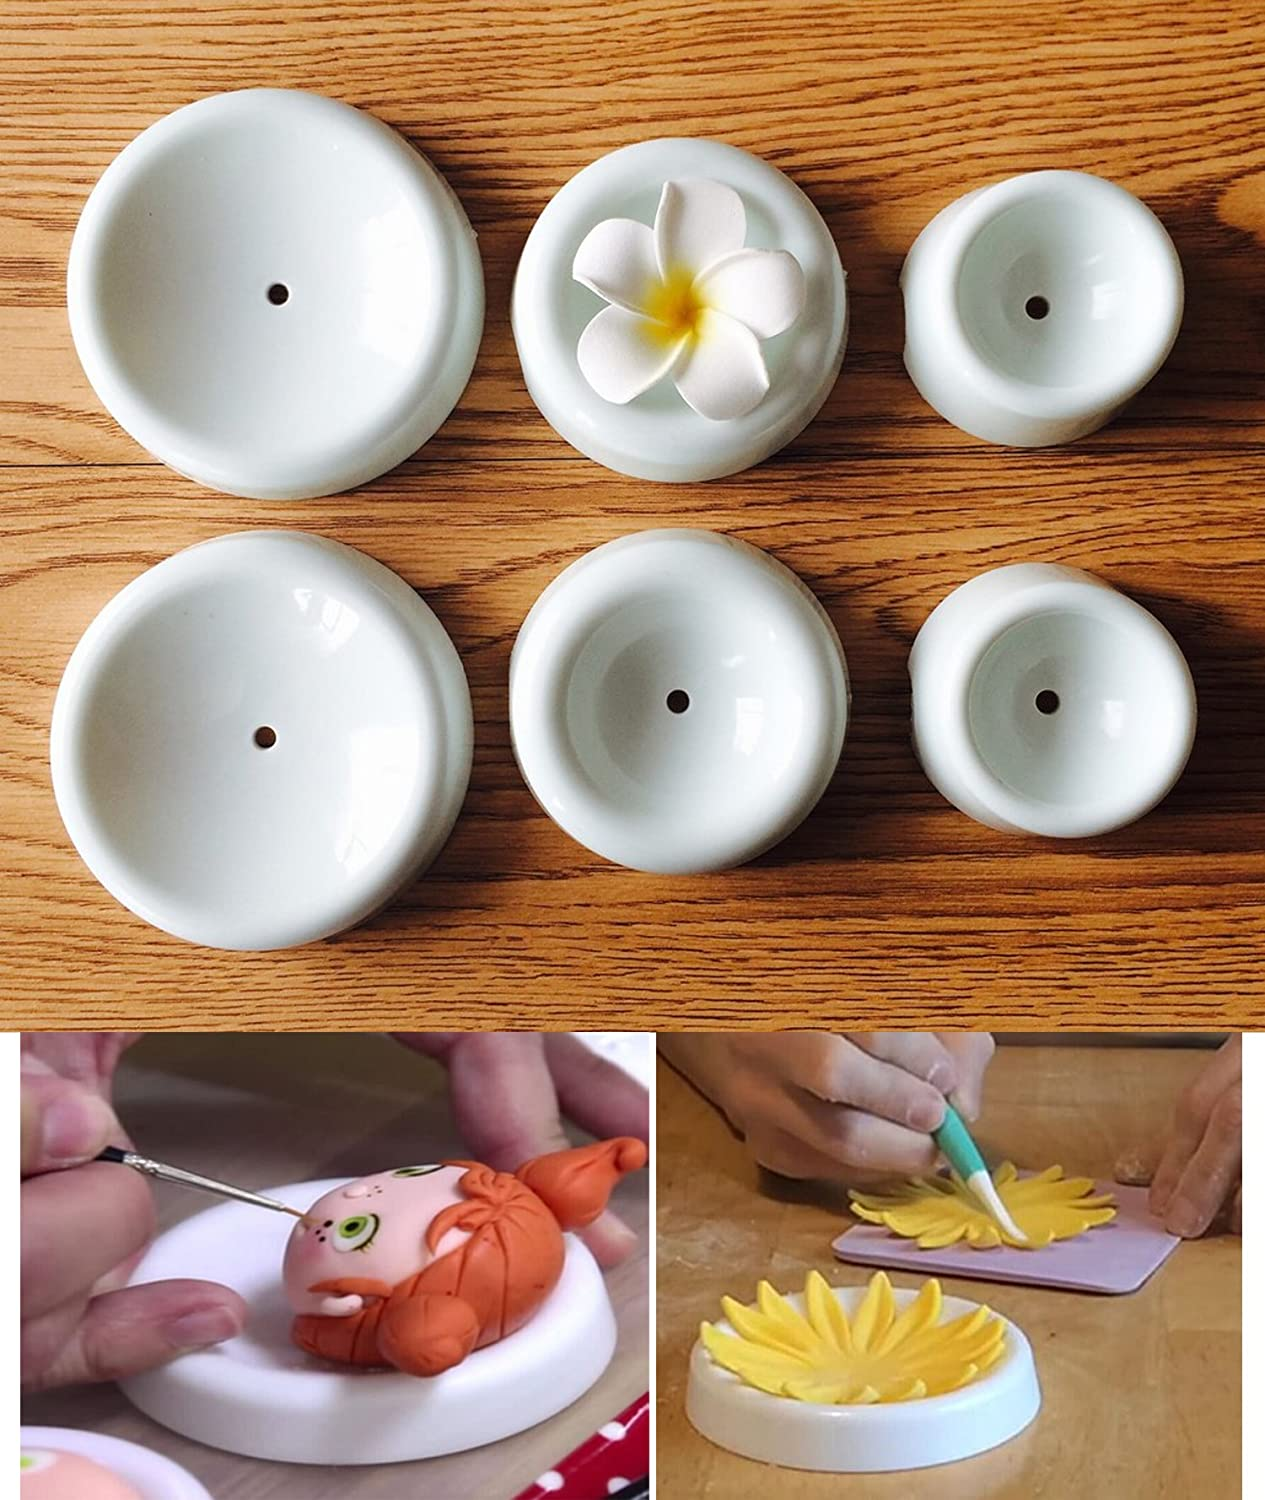 Fondant Drying Moulds 6 Pcs/Set, KOOTIPS Button Shapes Fondant Forming Cups Flower Drying Moulds Flower Cup Holder Cake Decorating Tools Kootips-1-341